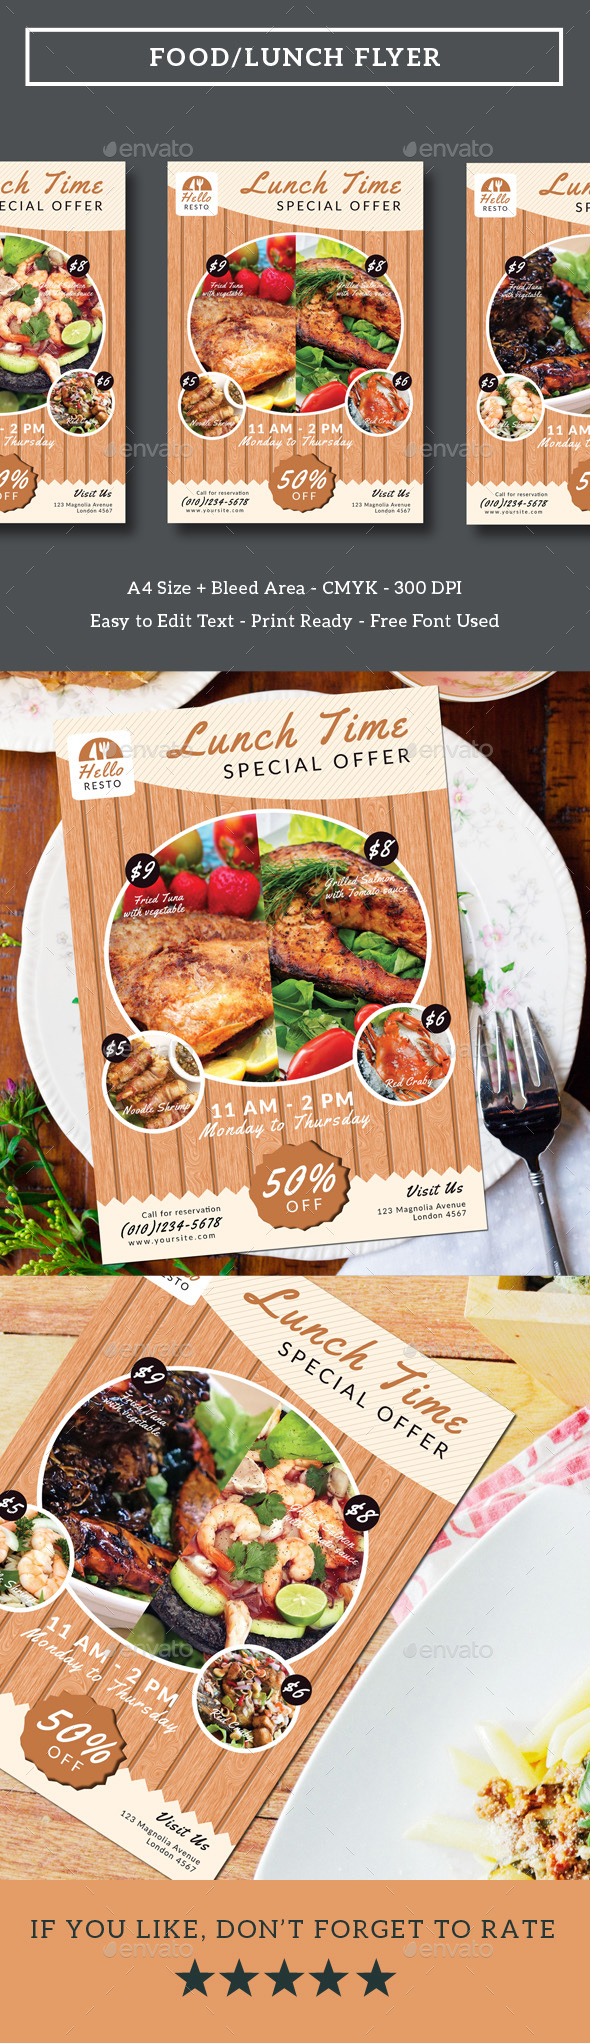 Food/Lunch Flyer